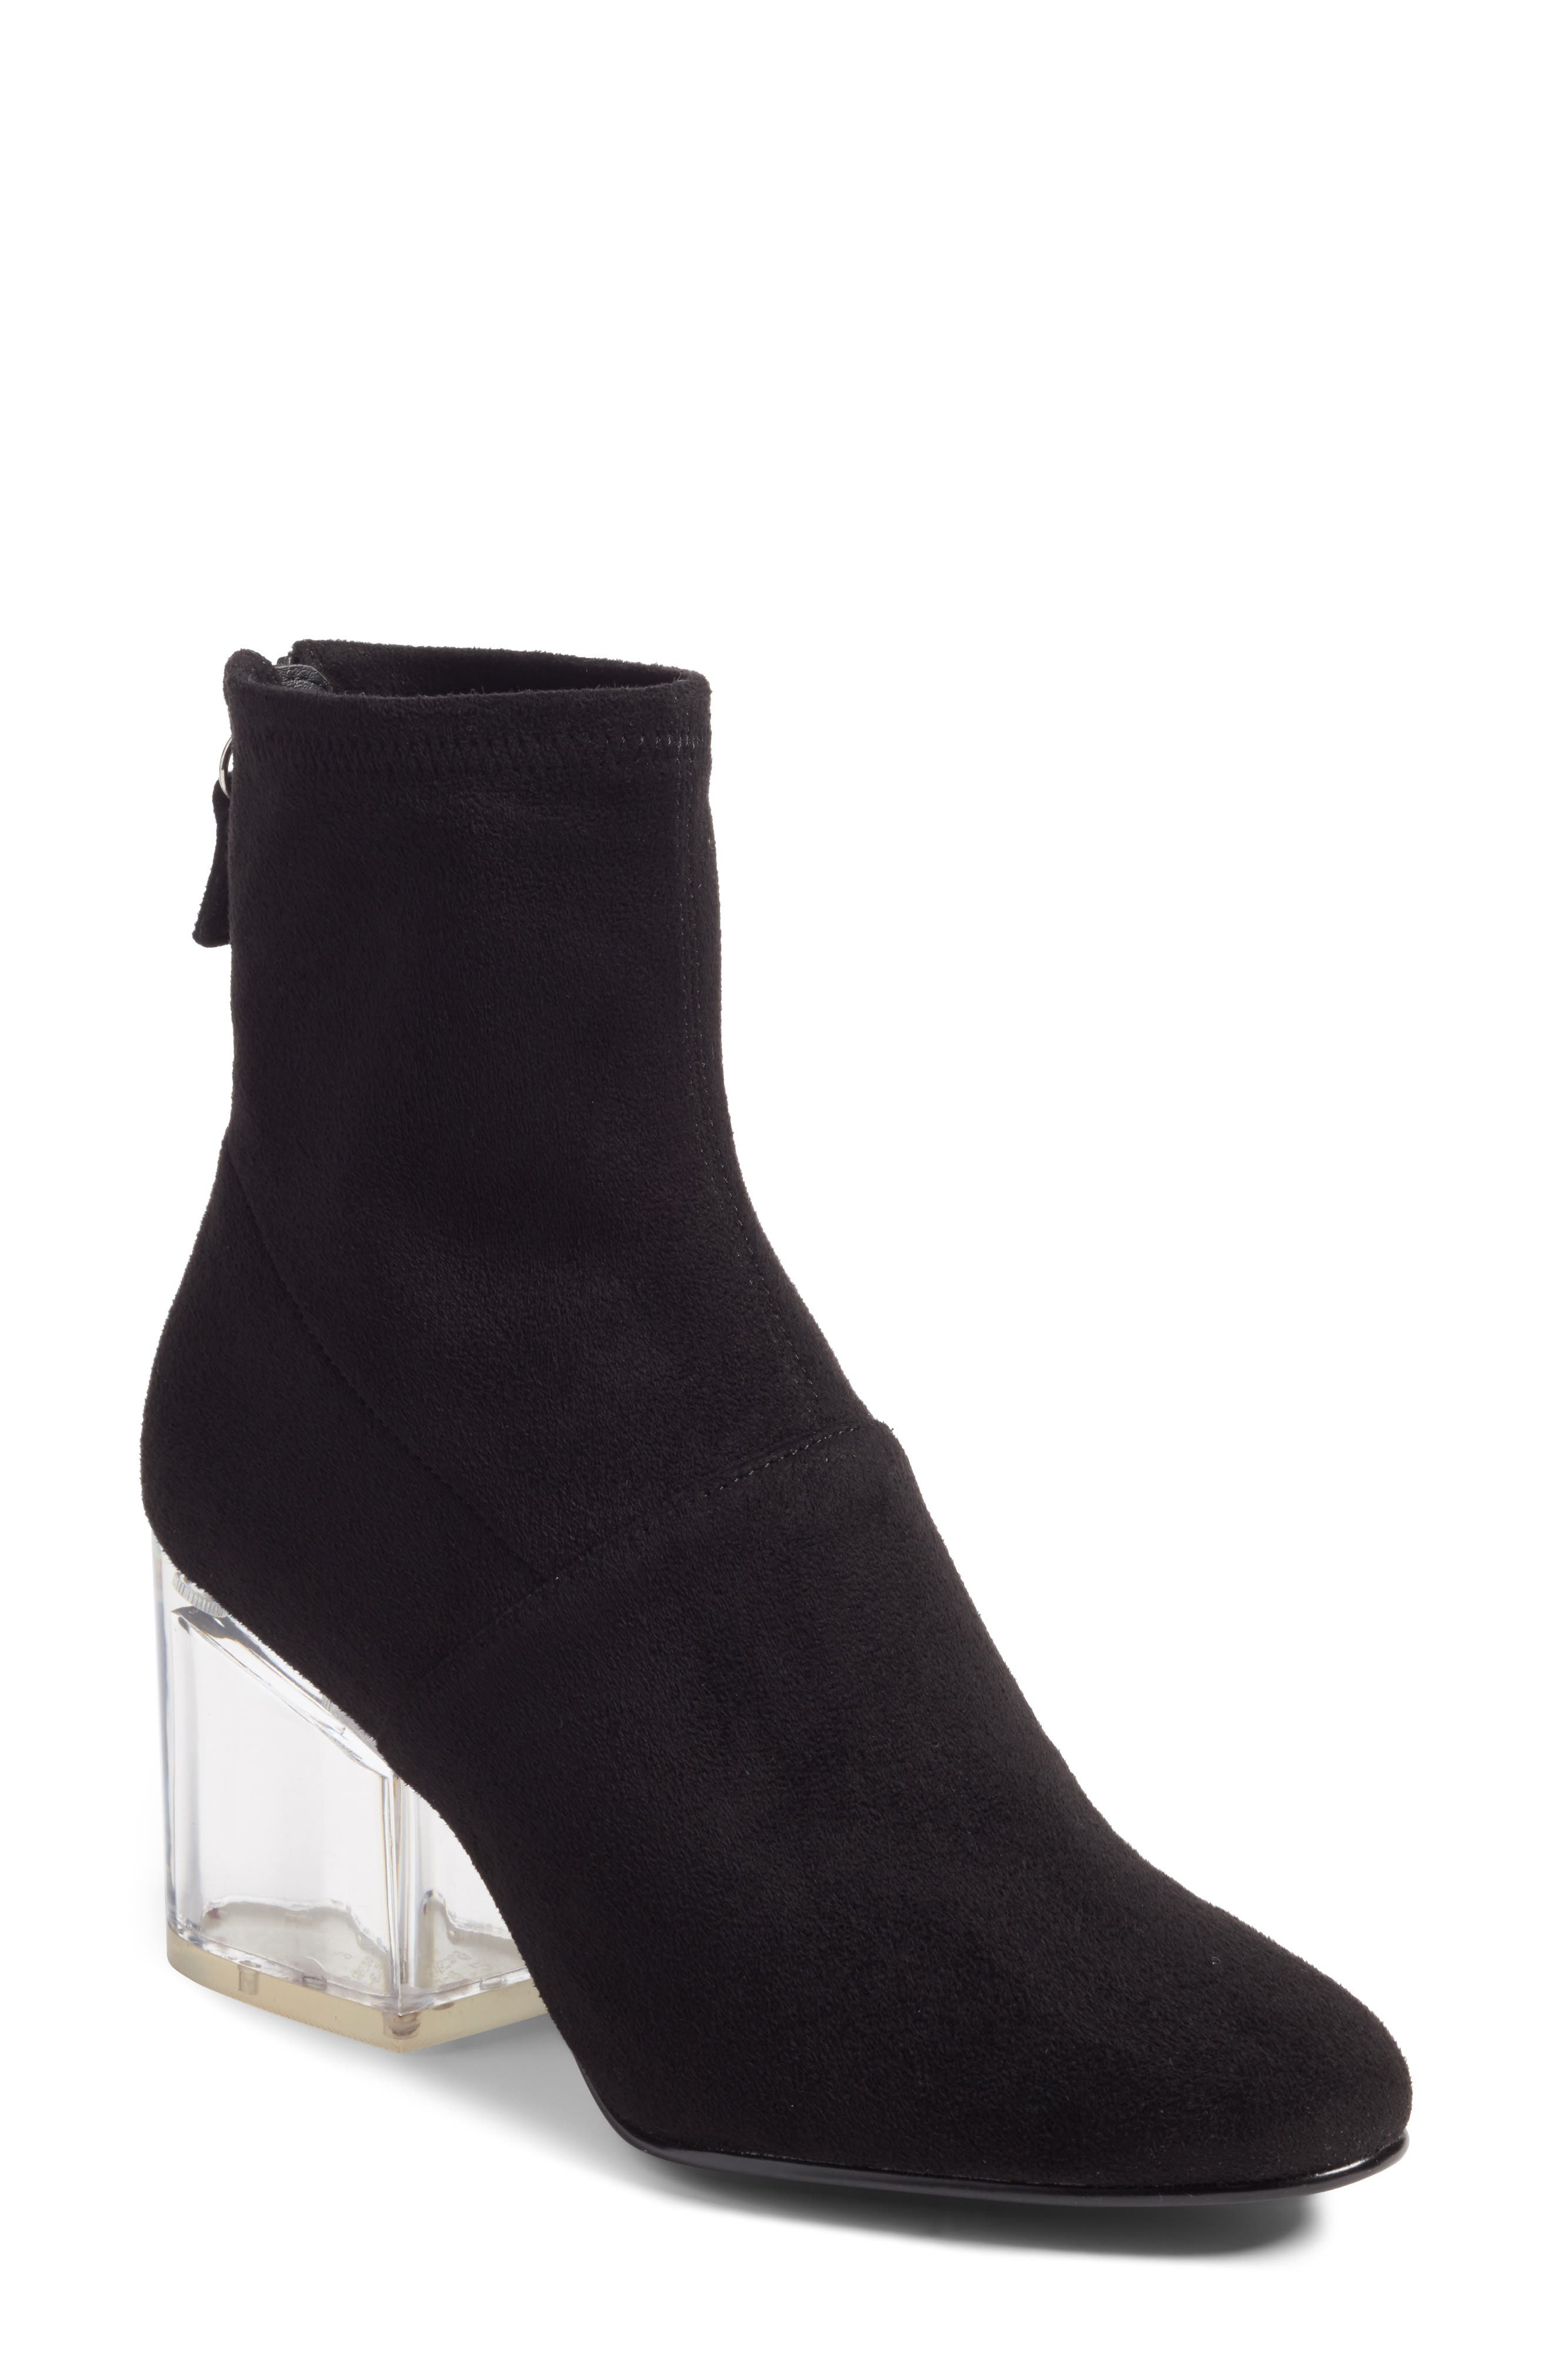 Lusty Statement Heel Bootie,                             Main thumbnail 1, color,                             001